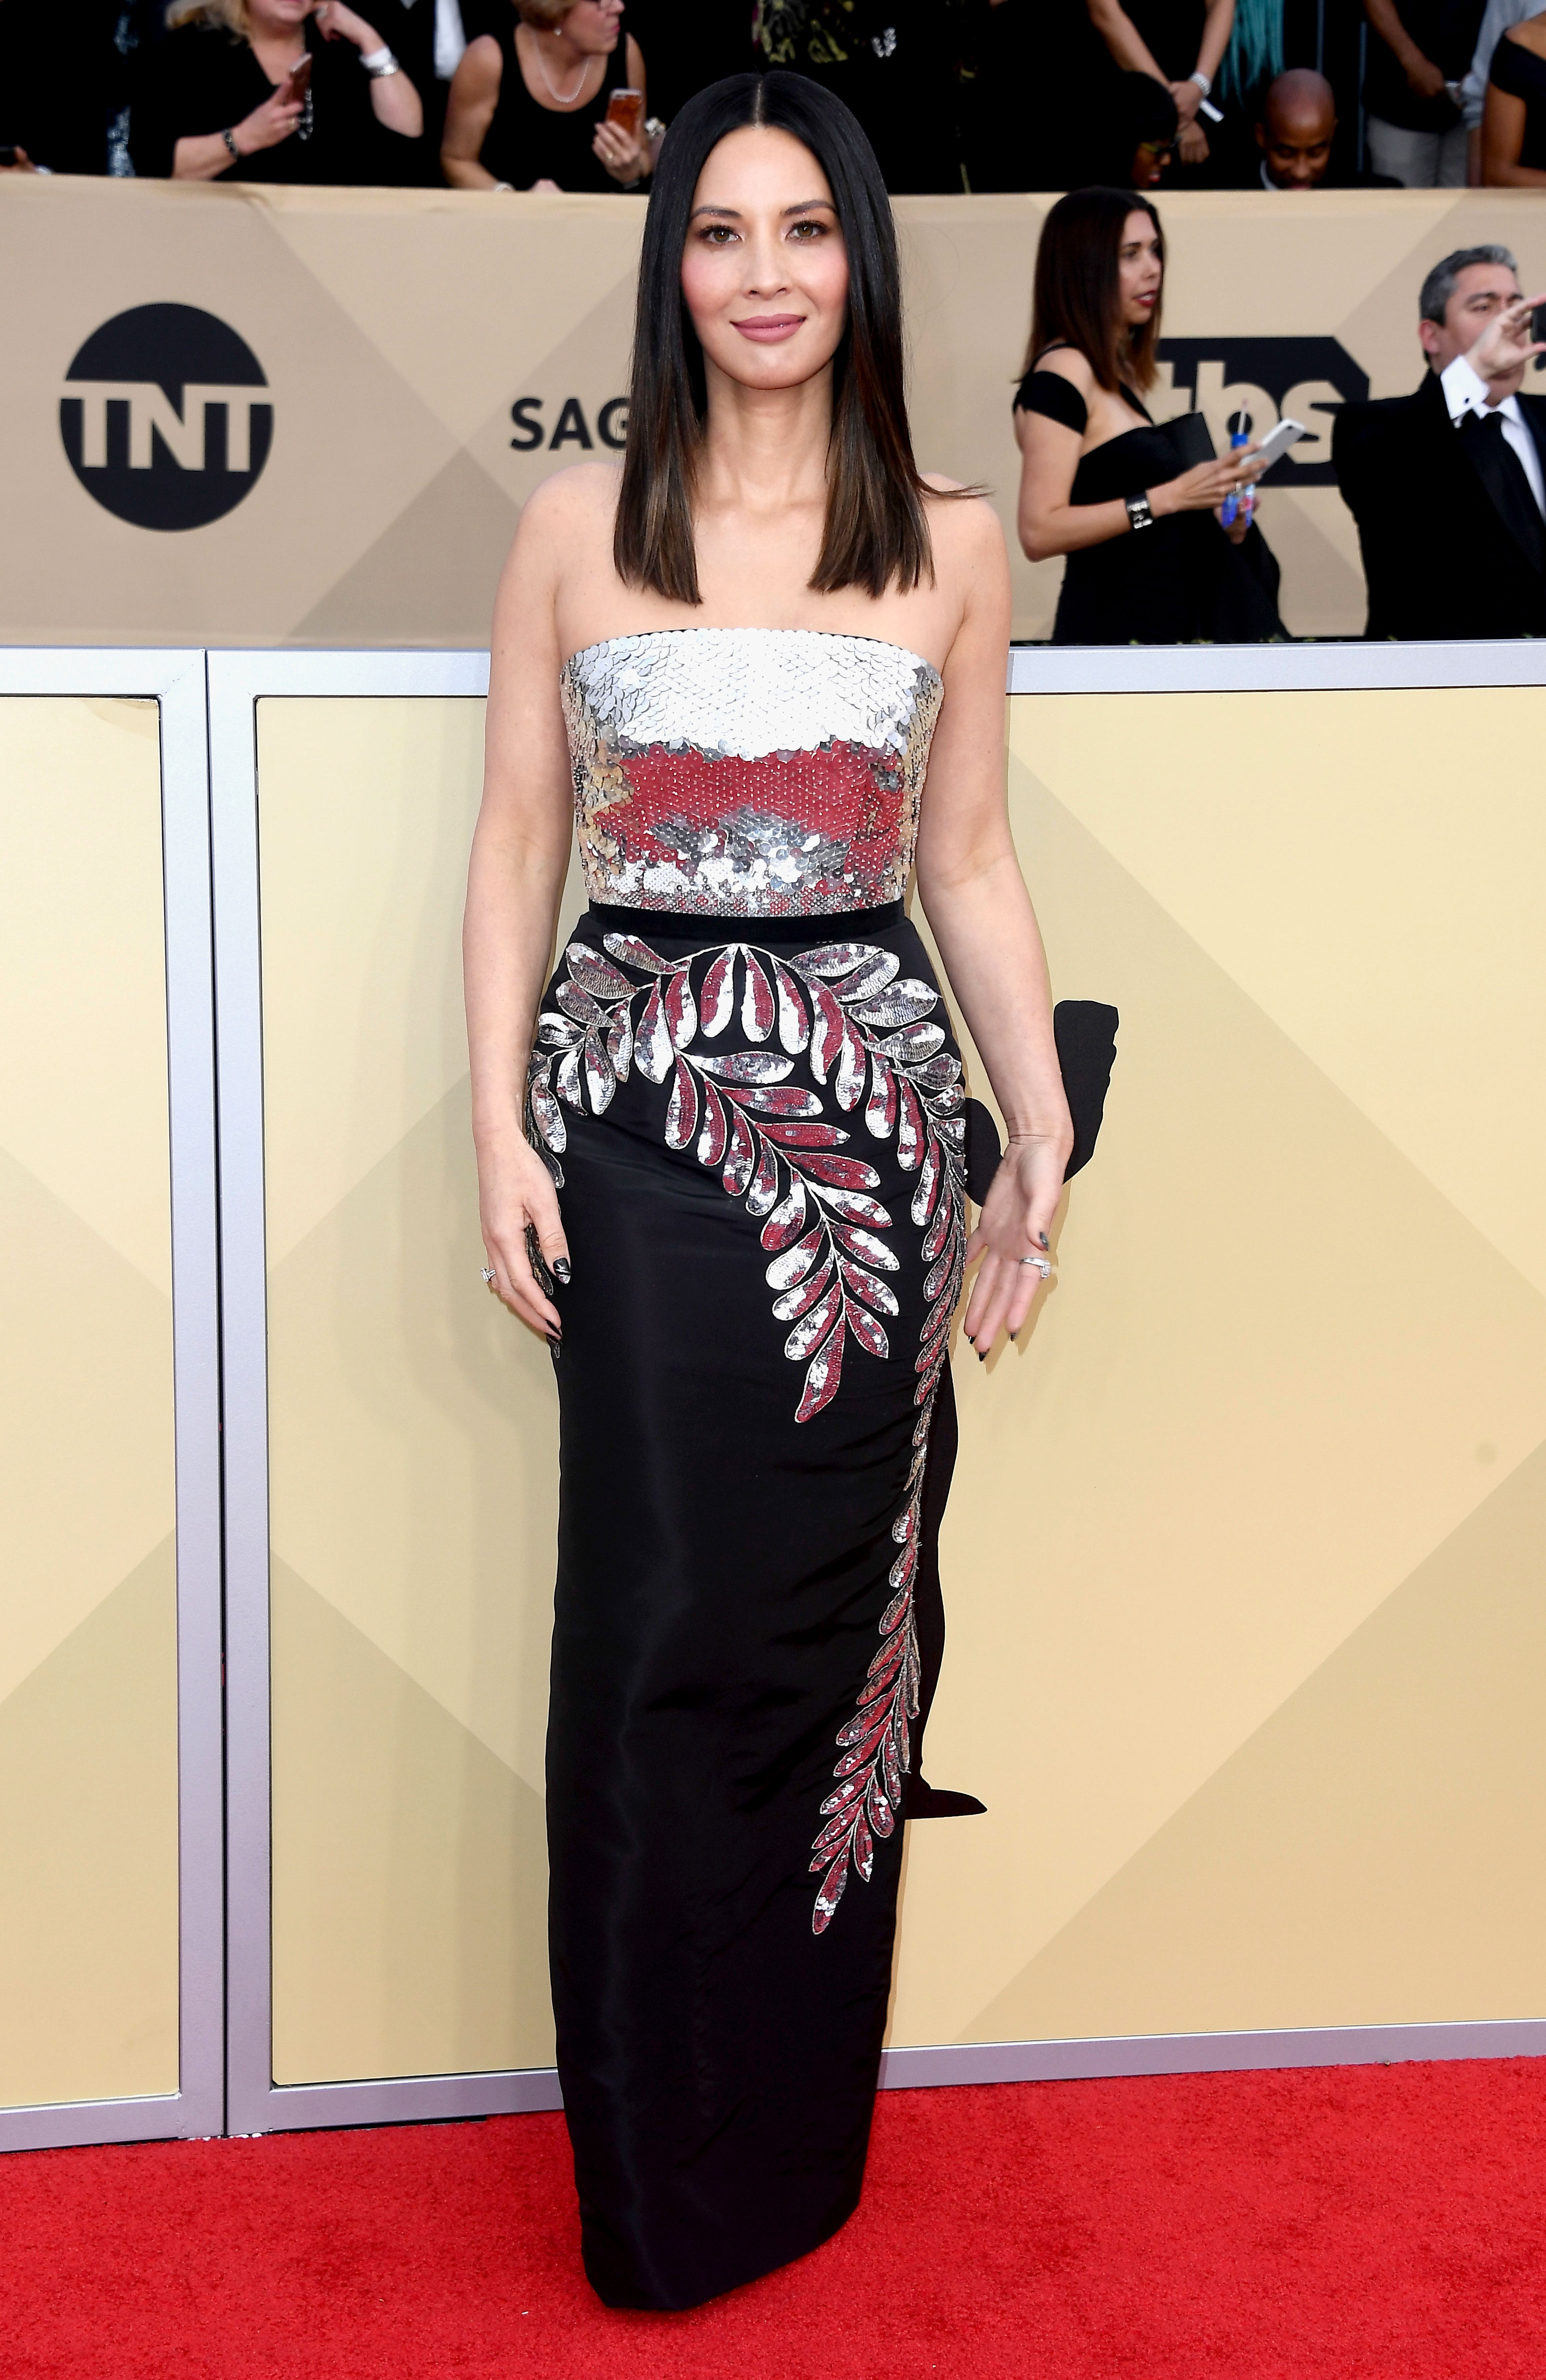 Sag Awards 2018 Red Carpet Fashion See Stars Dresses Gowns